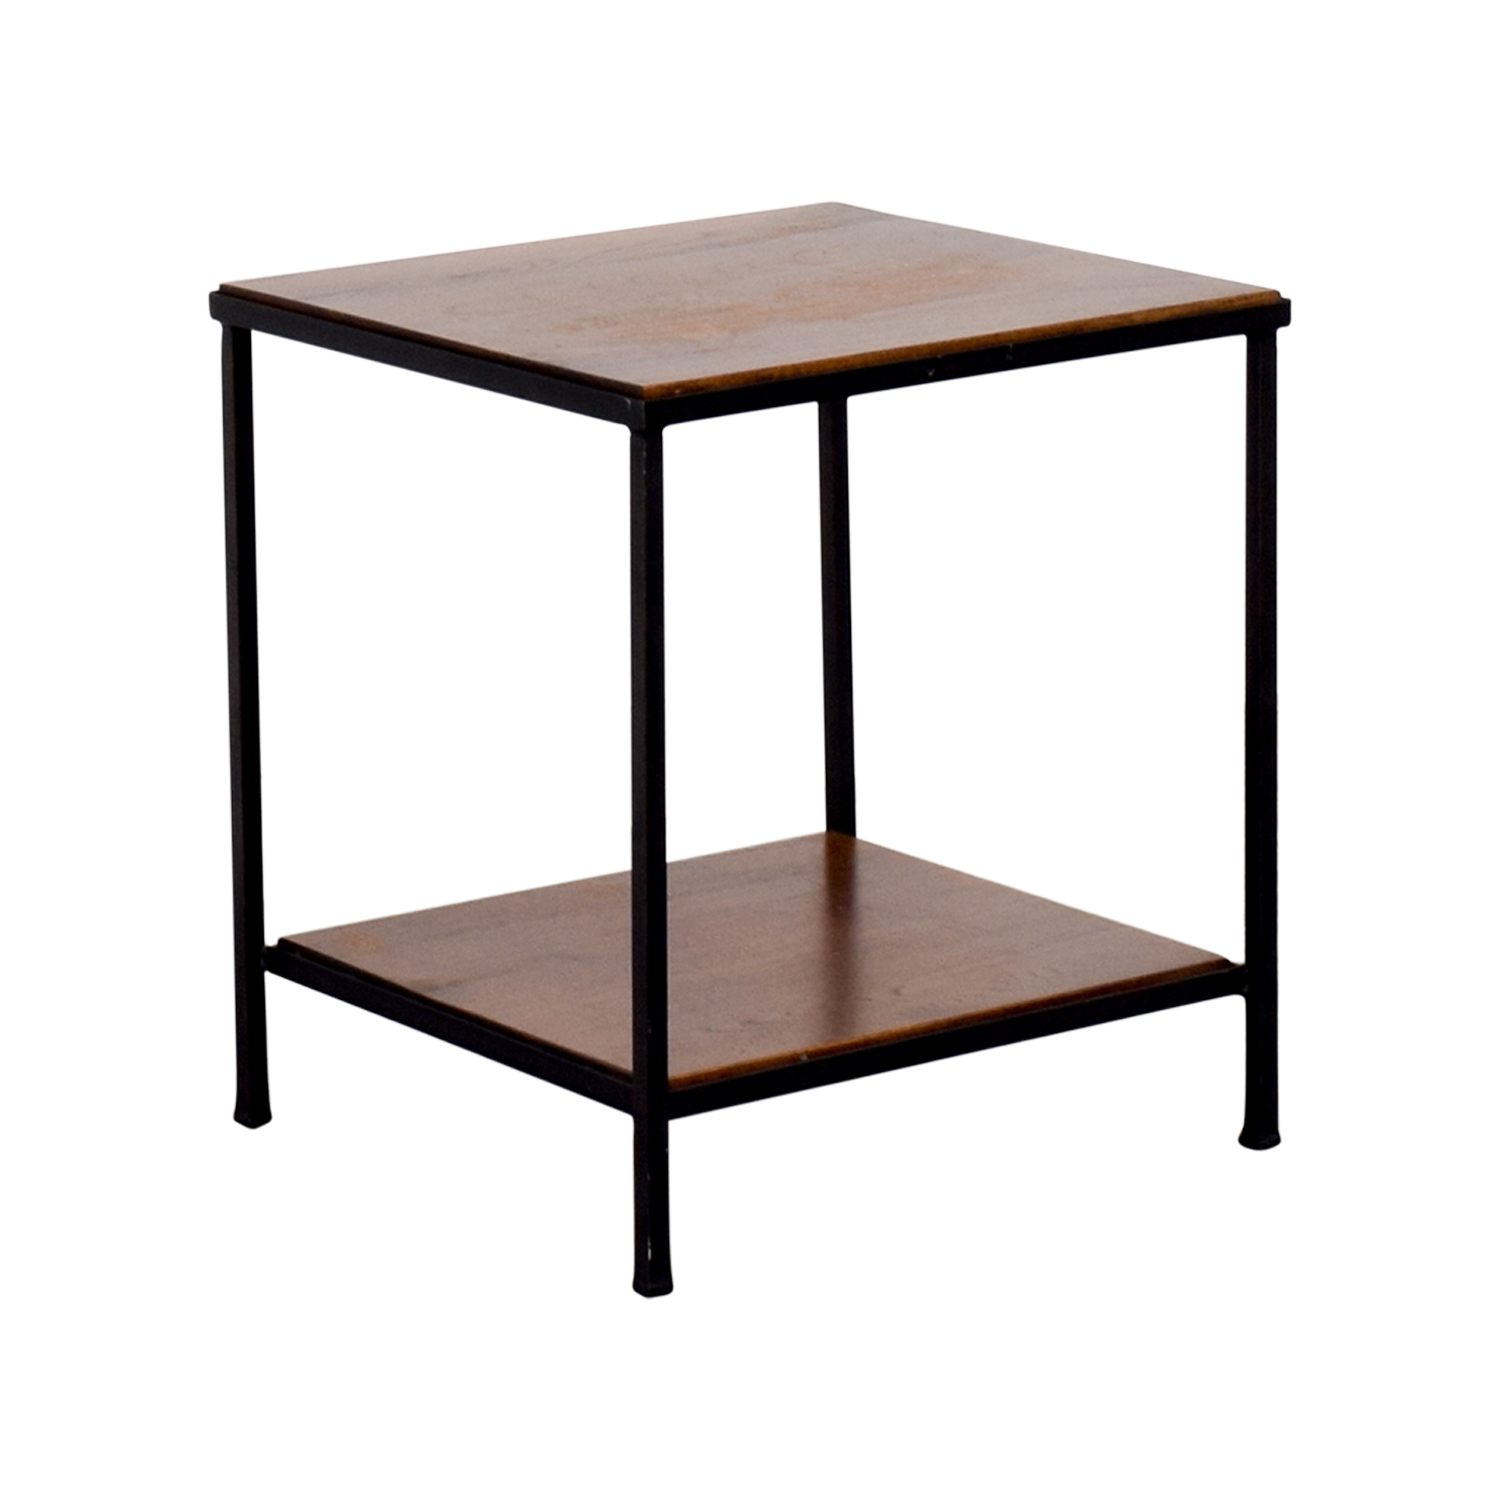 71 Off Pottery Barn Pottery Barn Wood And Metal Side